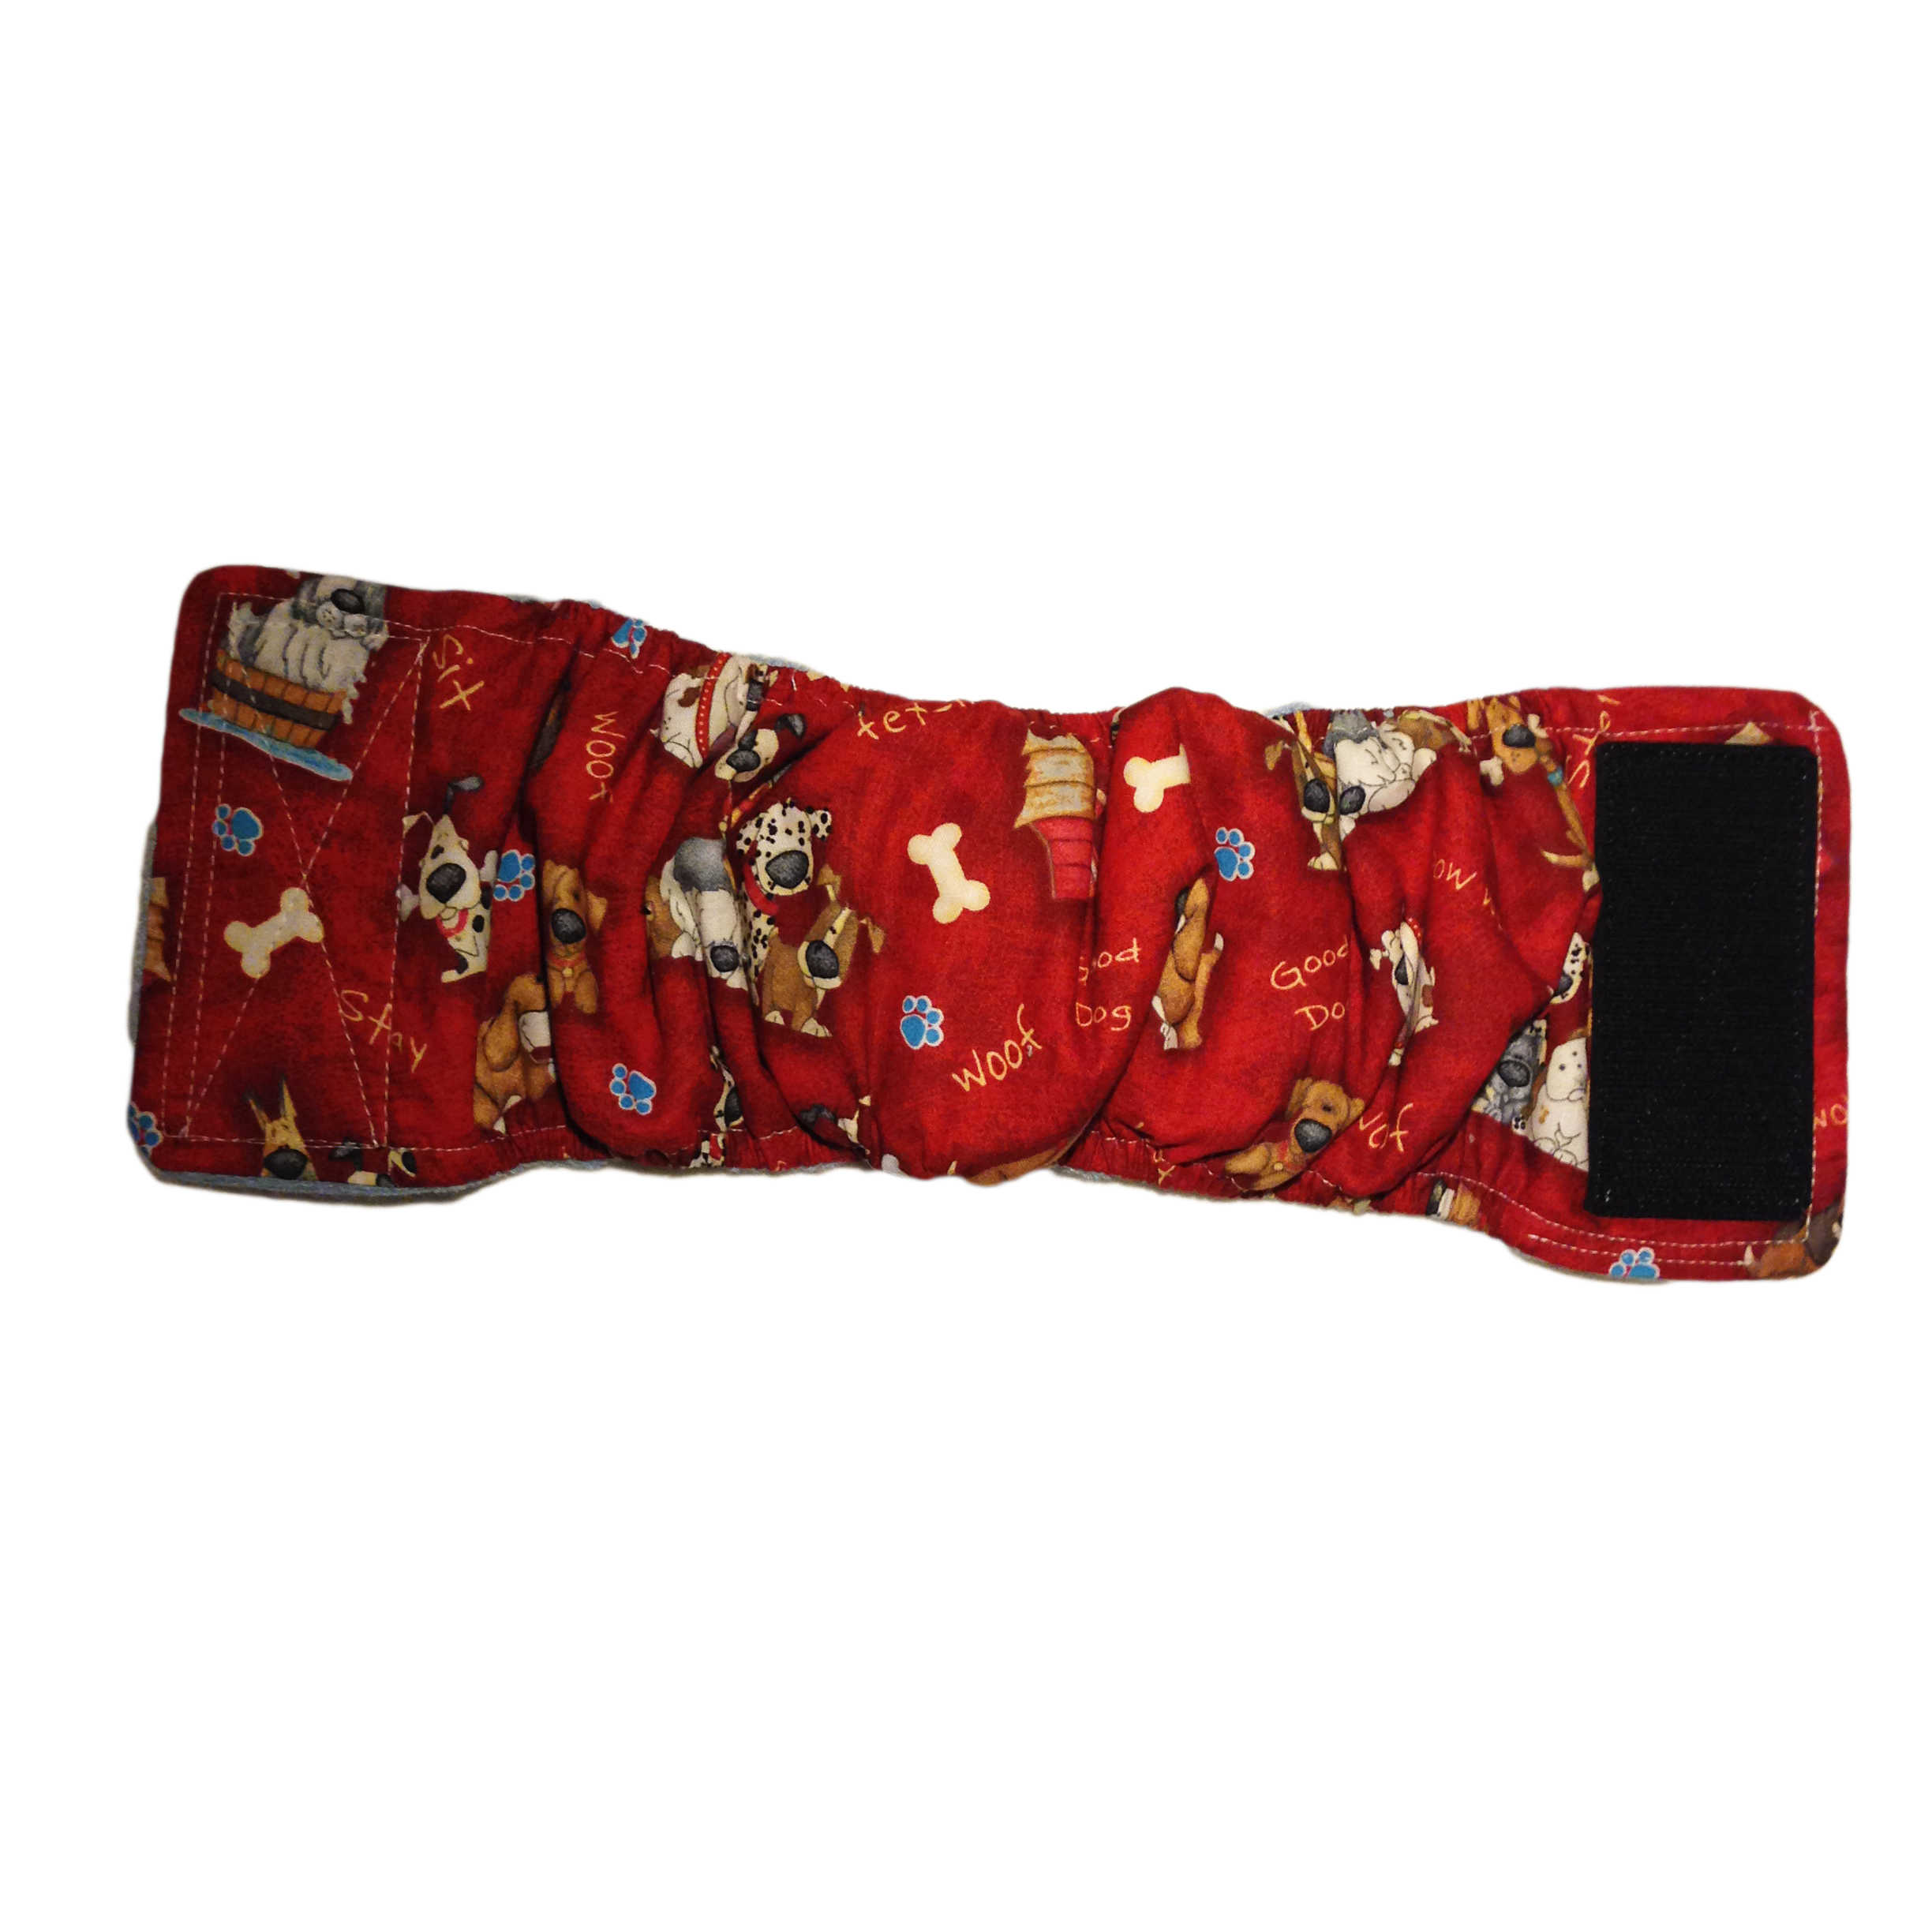 Full Bands: Barkertime Good Doggie Washable Dog Belly Band Male Wrap